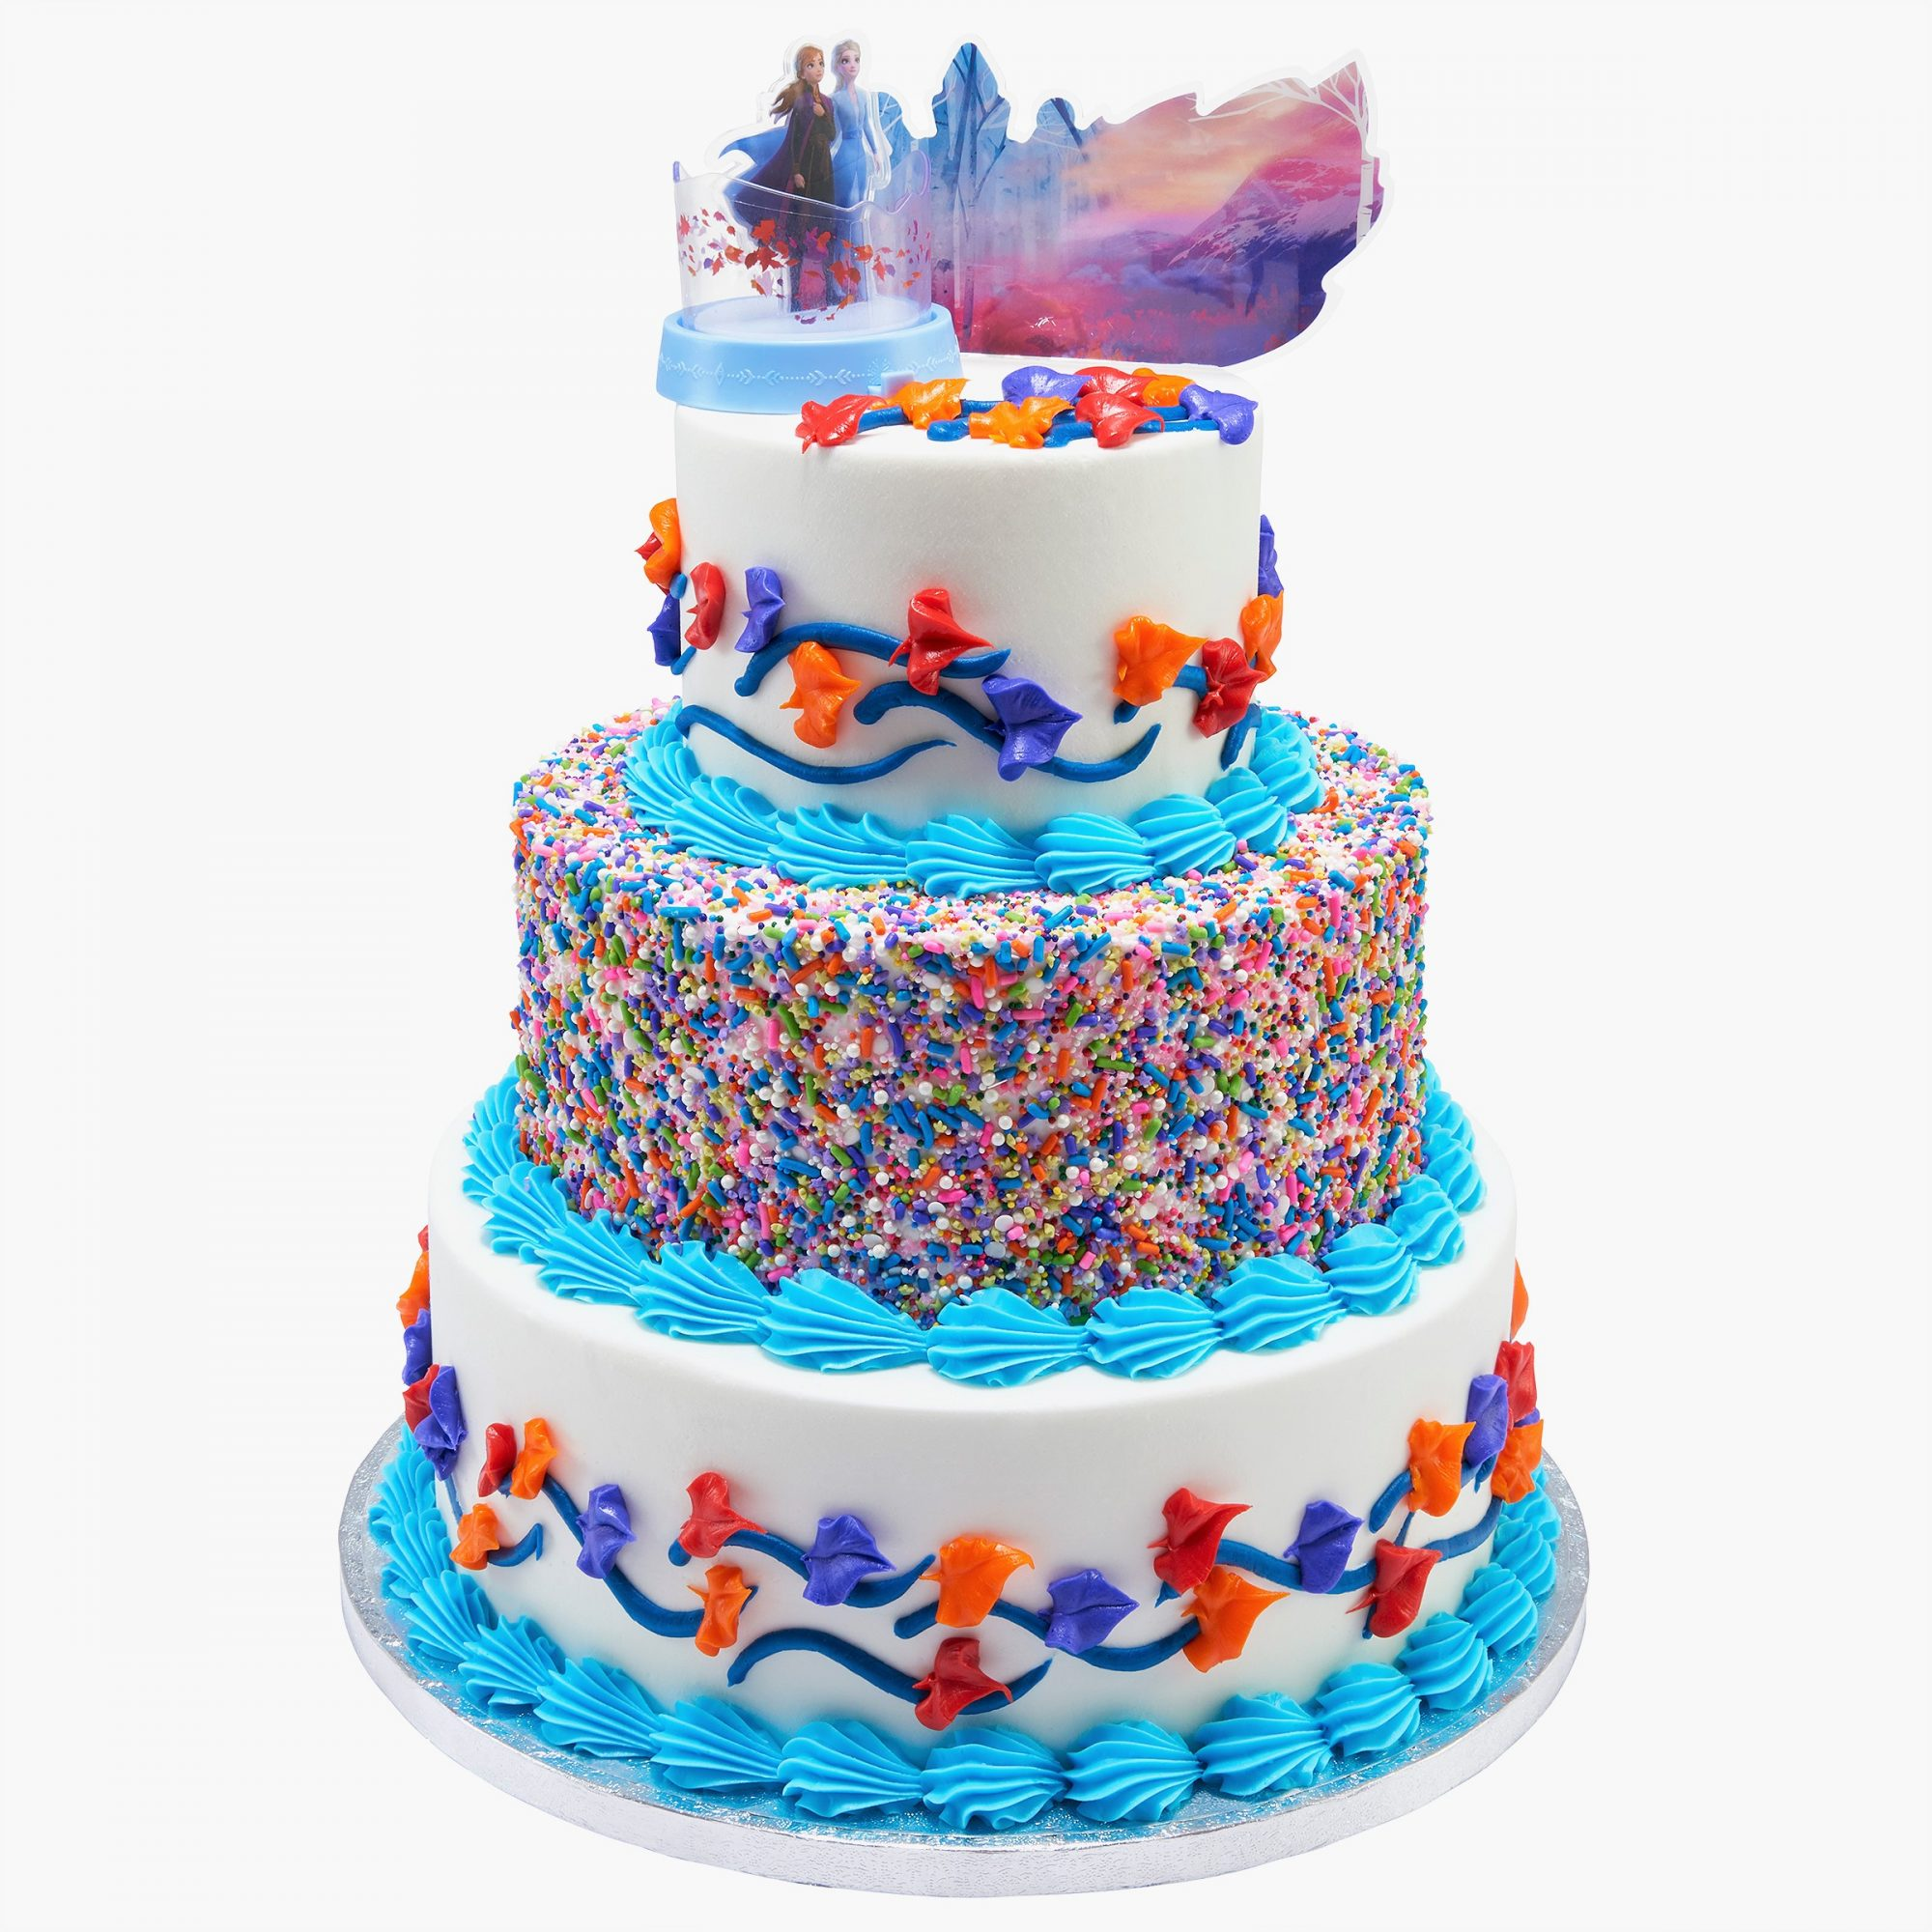 Frozen II Ice Cream Cake 3 Tiers